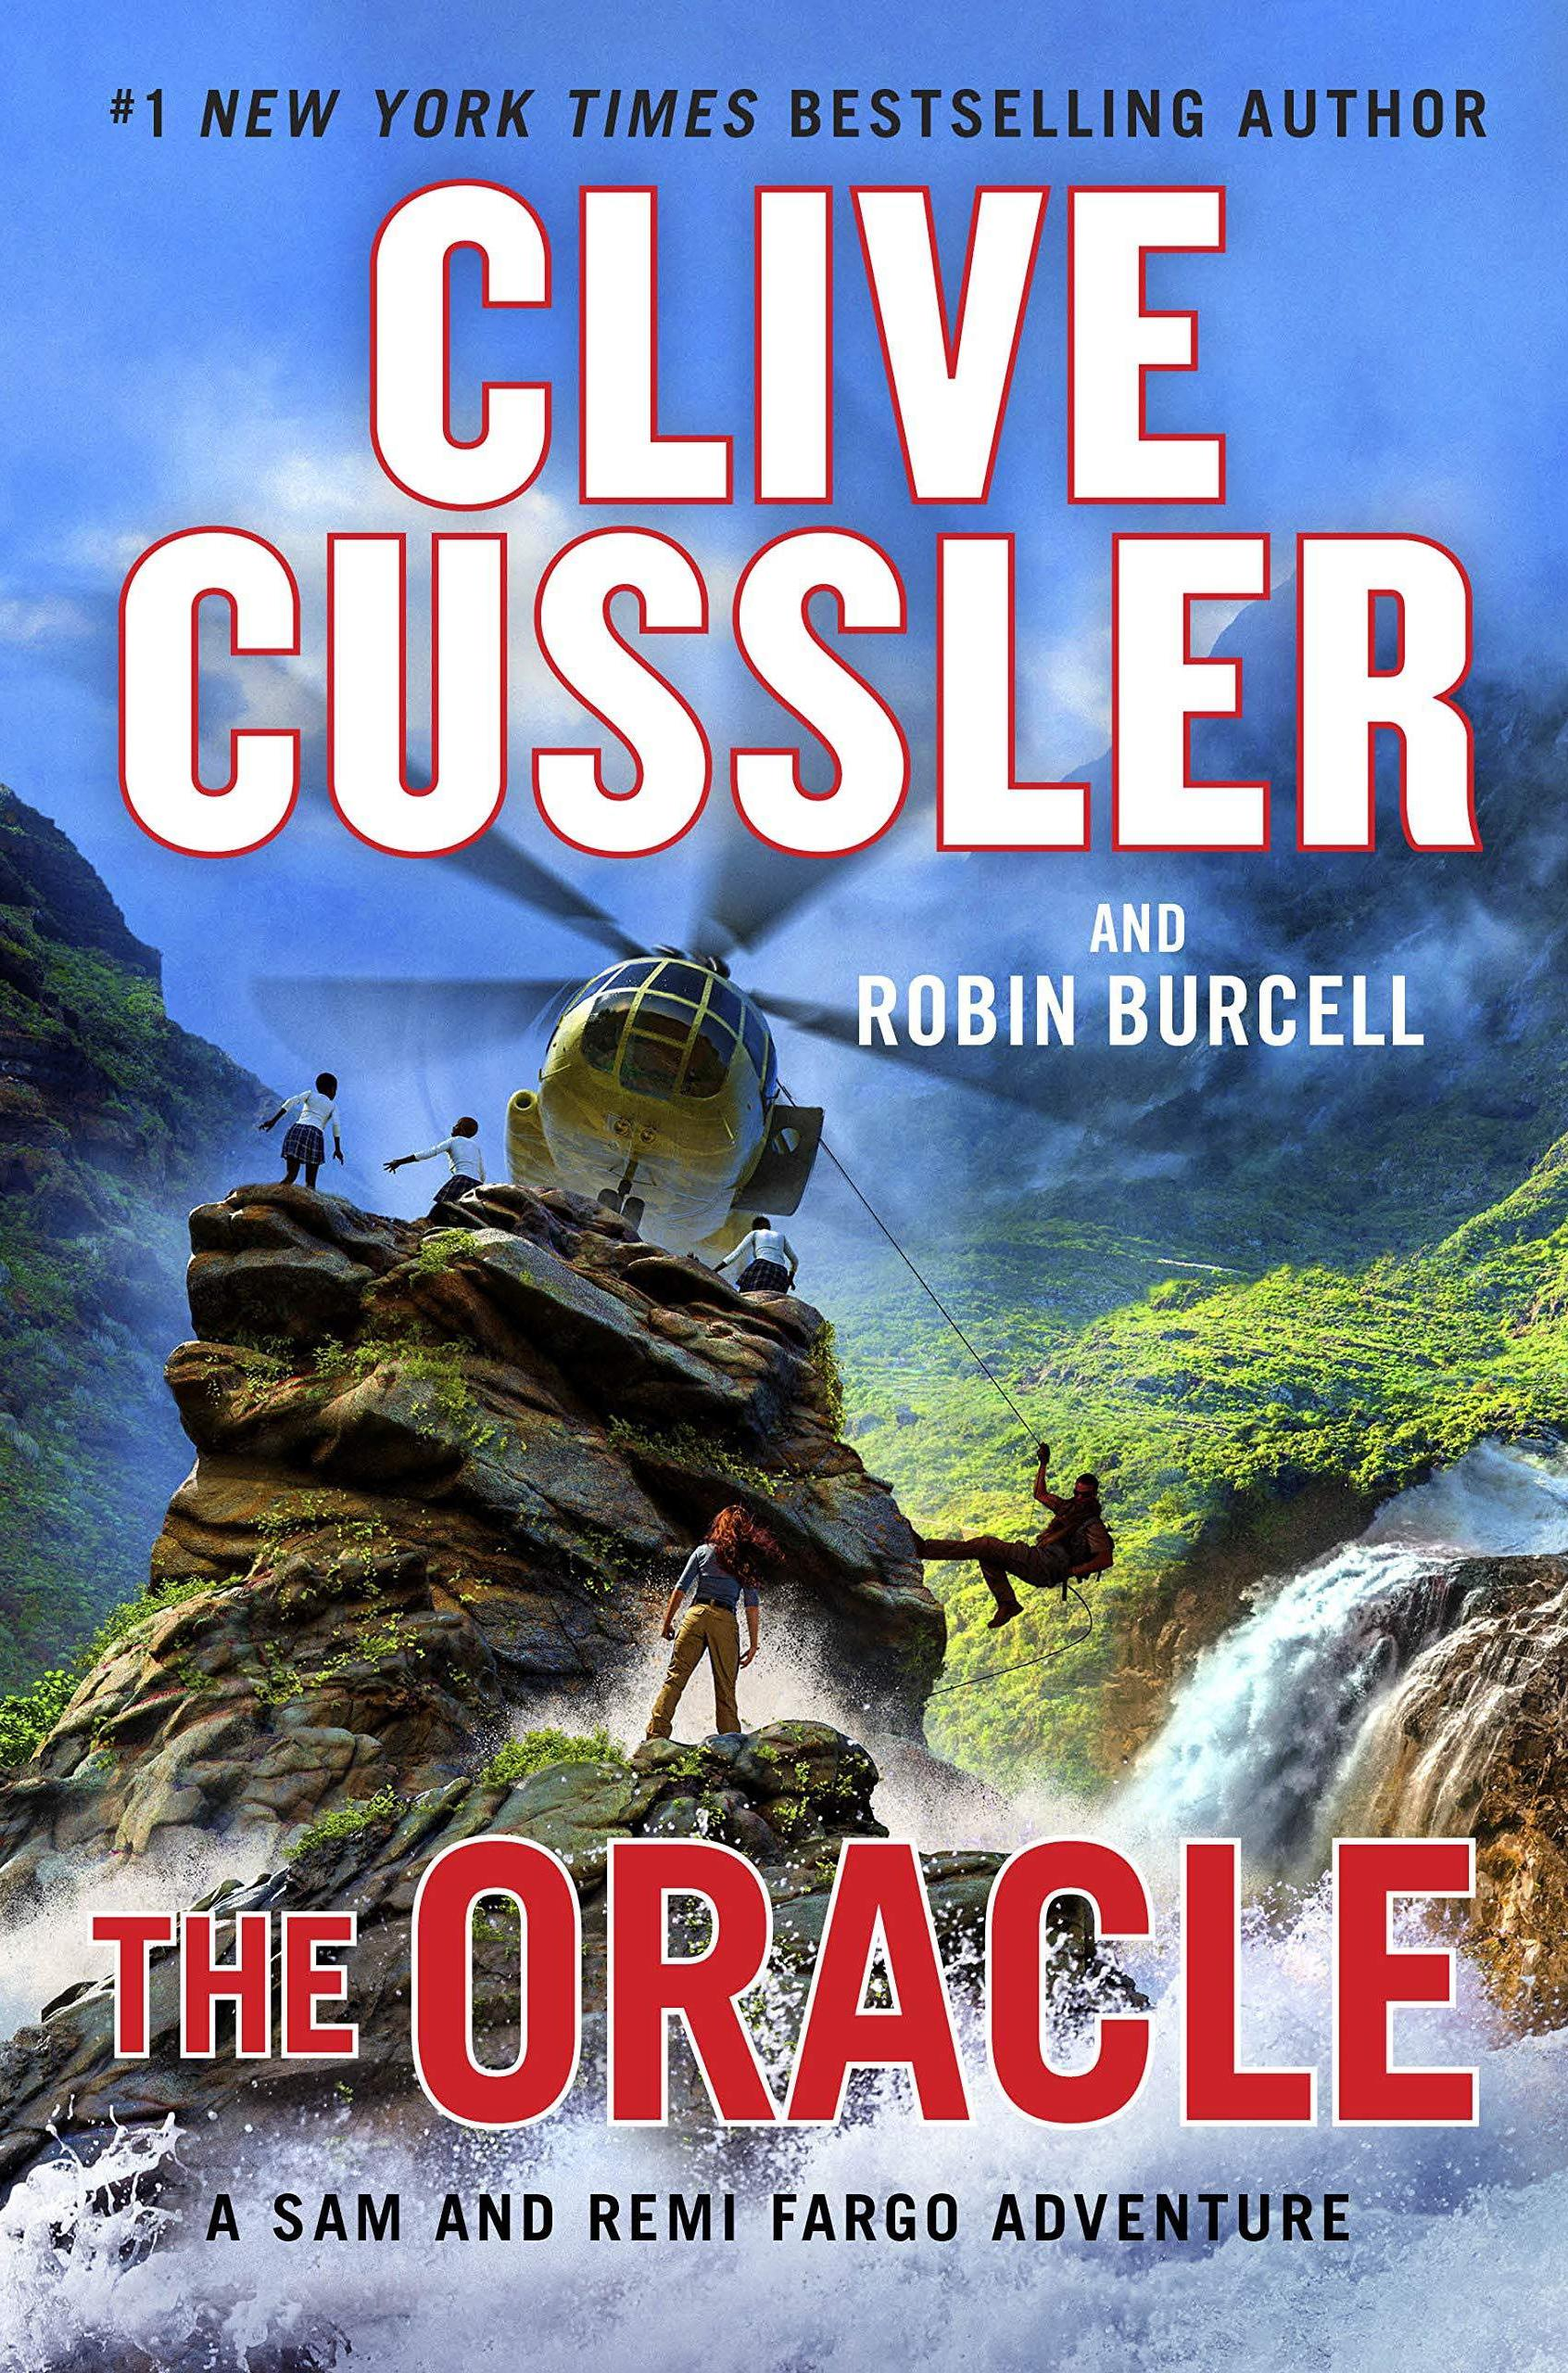 Book cover for The Oracle by Clive Cussler